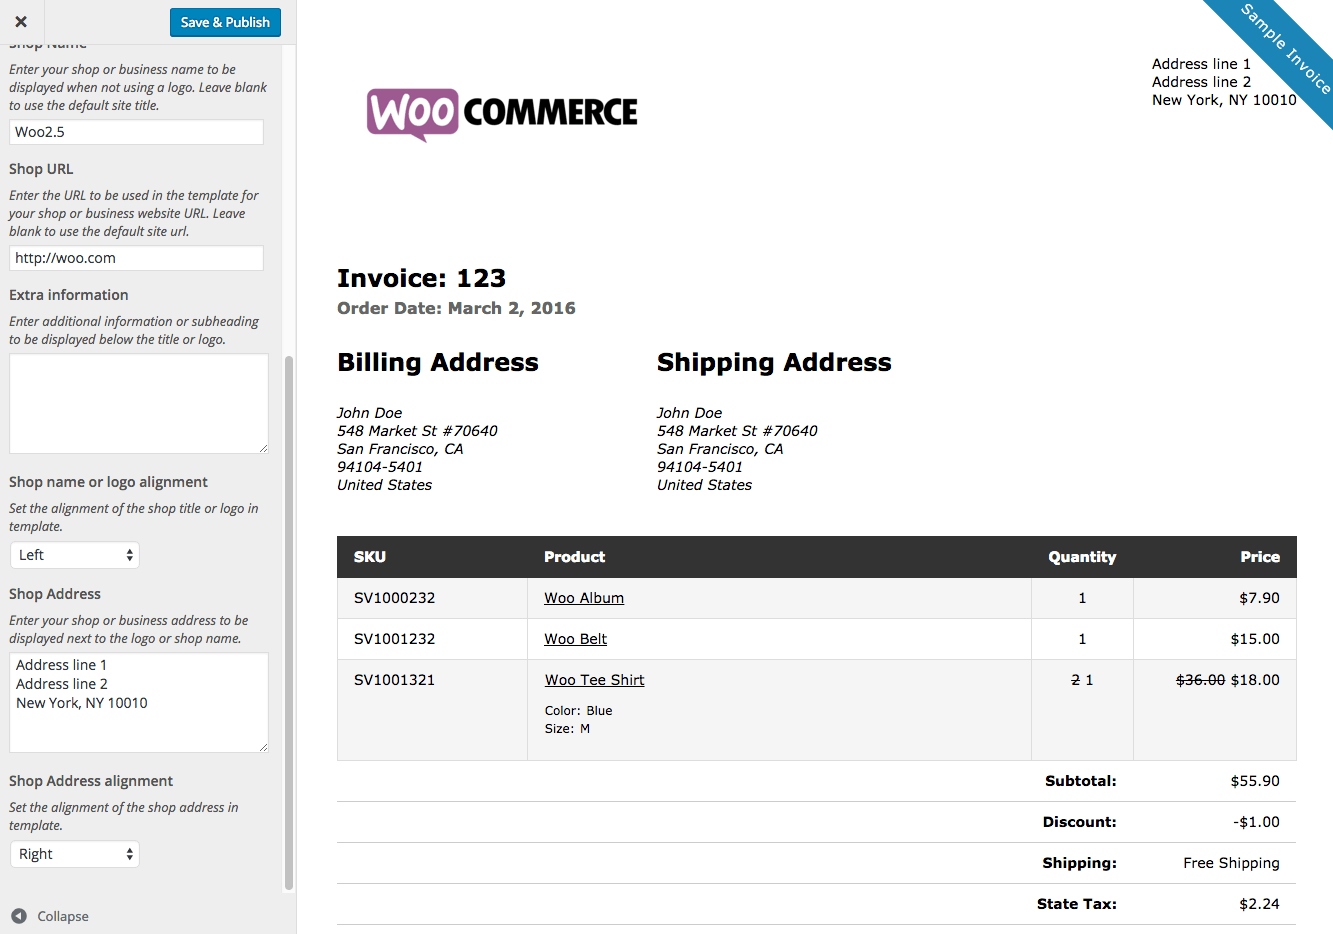 Opposenewapstandardsus  Stunning Print Invoices Amp Packing Lists  Woocommerce With Inspiring Woocommerce Print Invoices  Packing Lists Customizer With Cute Self Employment Invoice Also Invoice For Sale In Addition True Invoice Price For Cars And Billing Invoice Template Excel As Well As How To Layout An Invoice Additionally What Is Invoice Cost From Woocommercecom With Opposenewapstandardsus  Inspiring Print Invoices Amp Packing Lists  Woocommerce With Cute Woocommerce Print Invoices  Packing Lists Customizer And Stunning Self Employment Invoice Also Invoice For Sale In Addition True Invoice Price For Cars From Woocommercecom